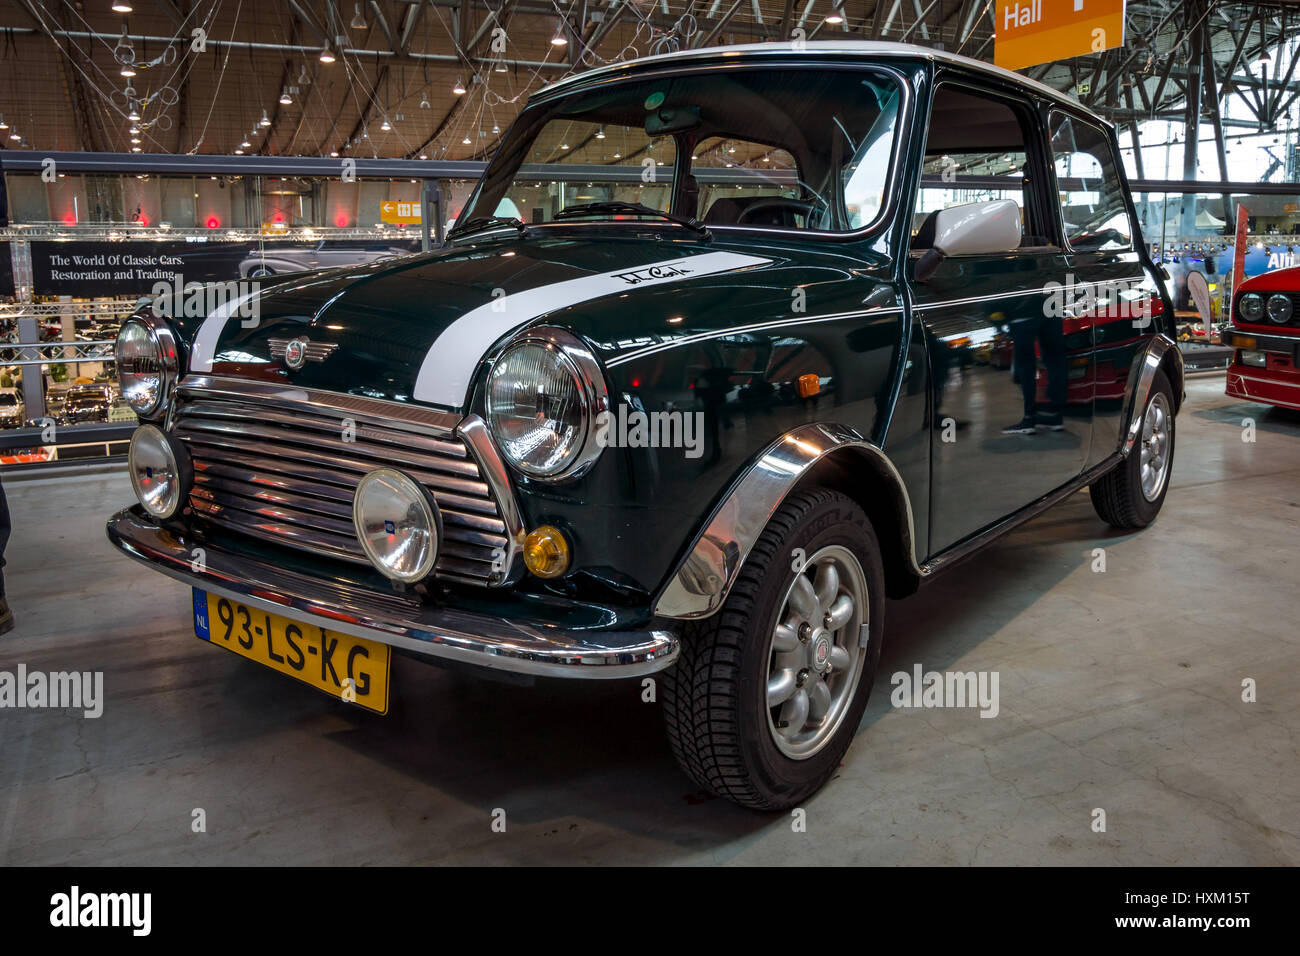 STUTTGART, GERMANY - MARCH 02, 2017: Small economy car Rover Mini ...